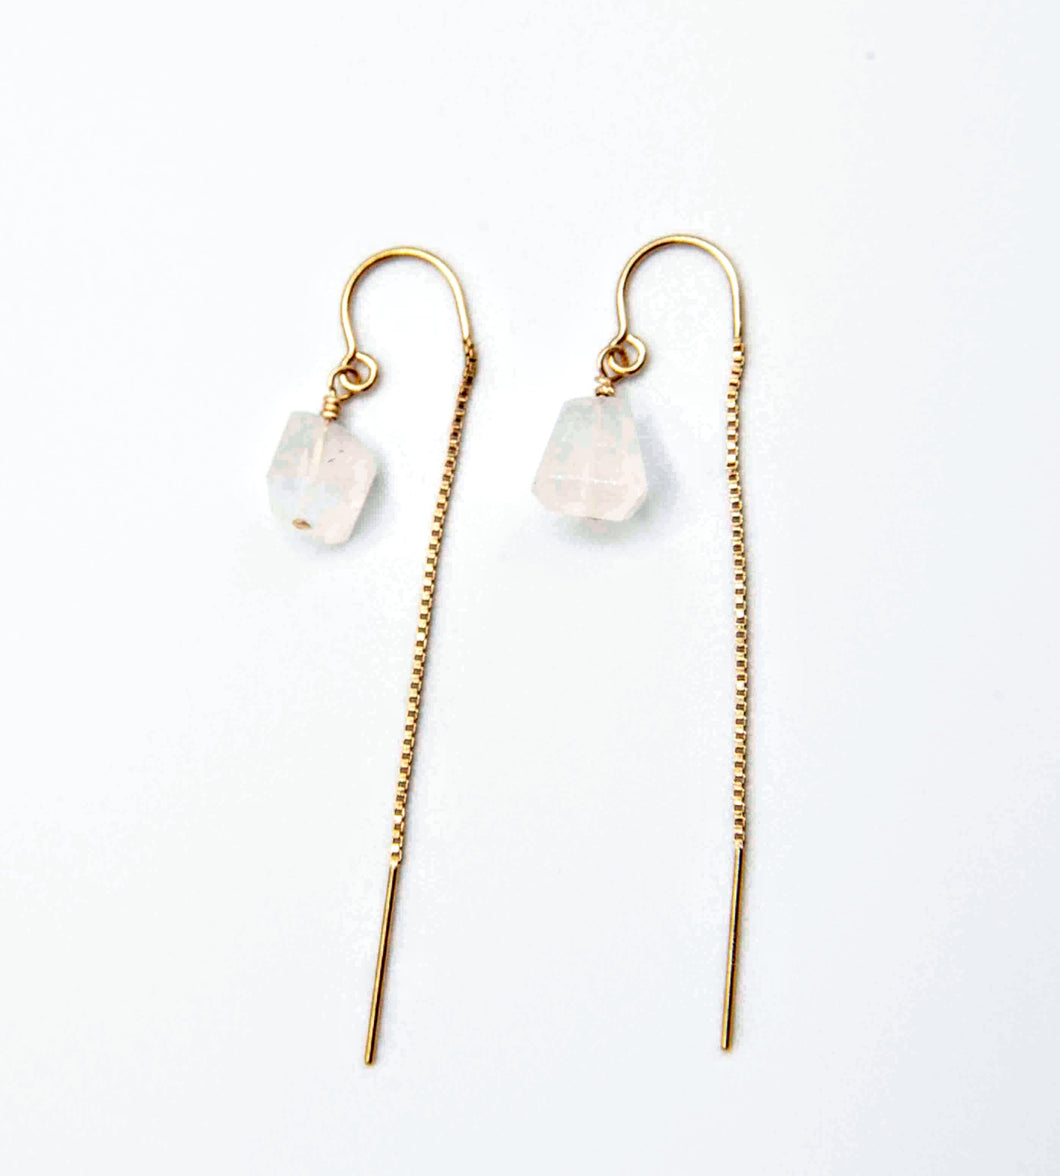 Moonstone Thread Earrings, sterling silver or 14k Gold fill, hypoallergenic jewelry